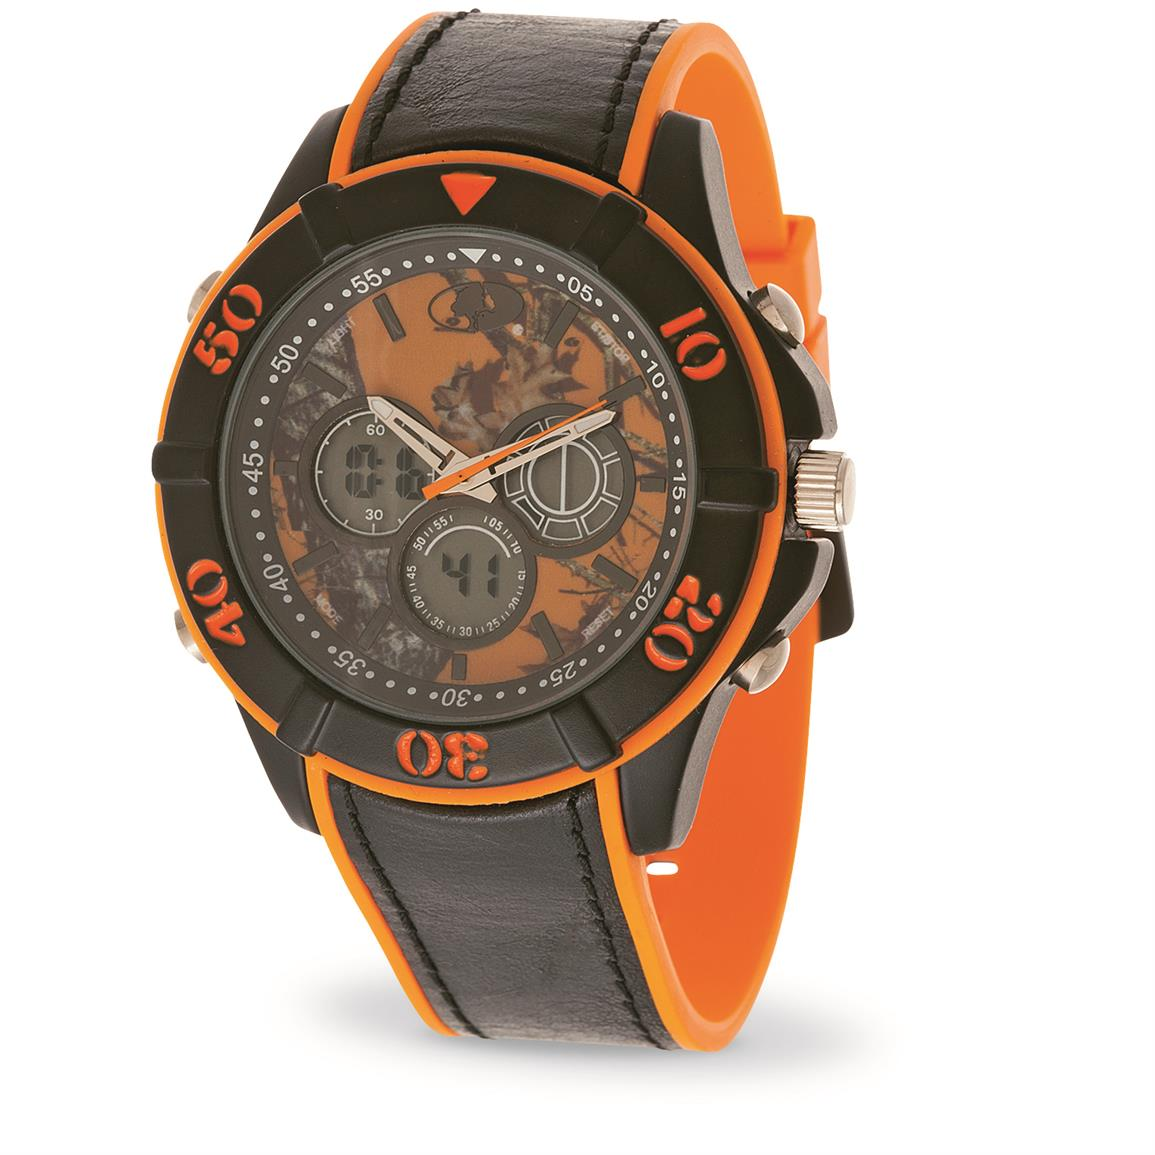 Mossy Oak Men's All-Terrain Field Watch